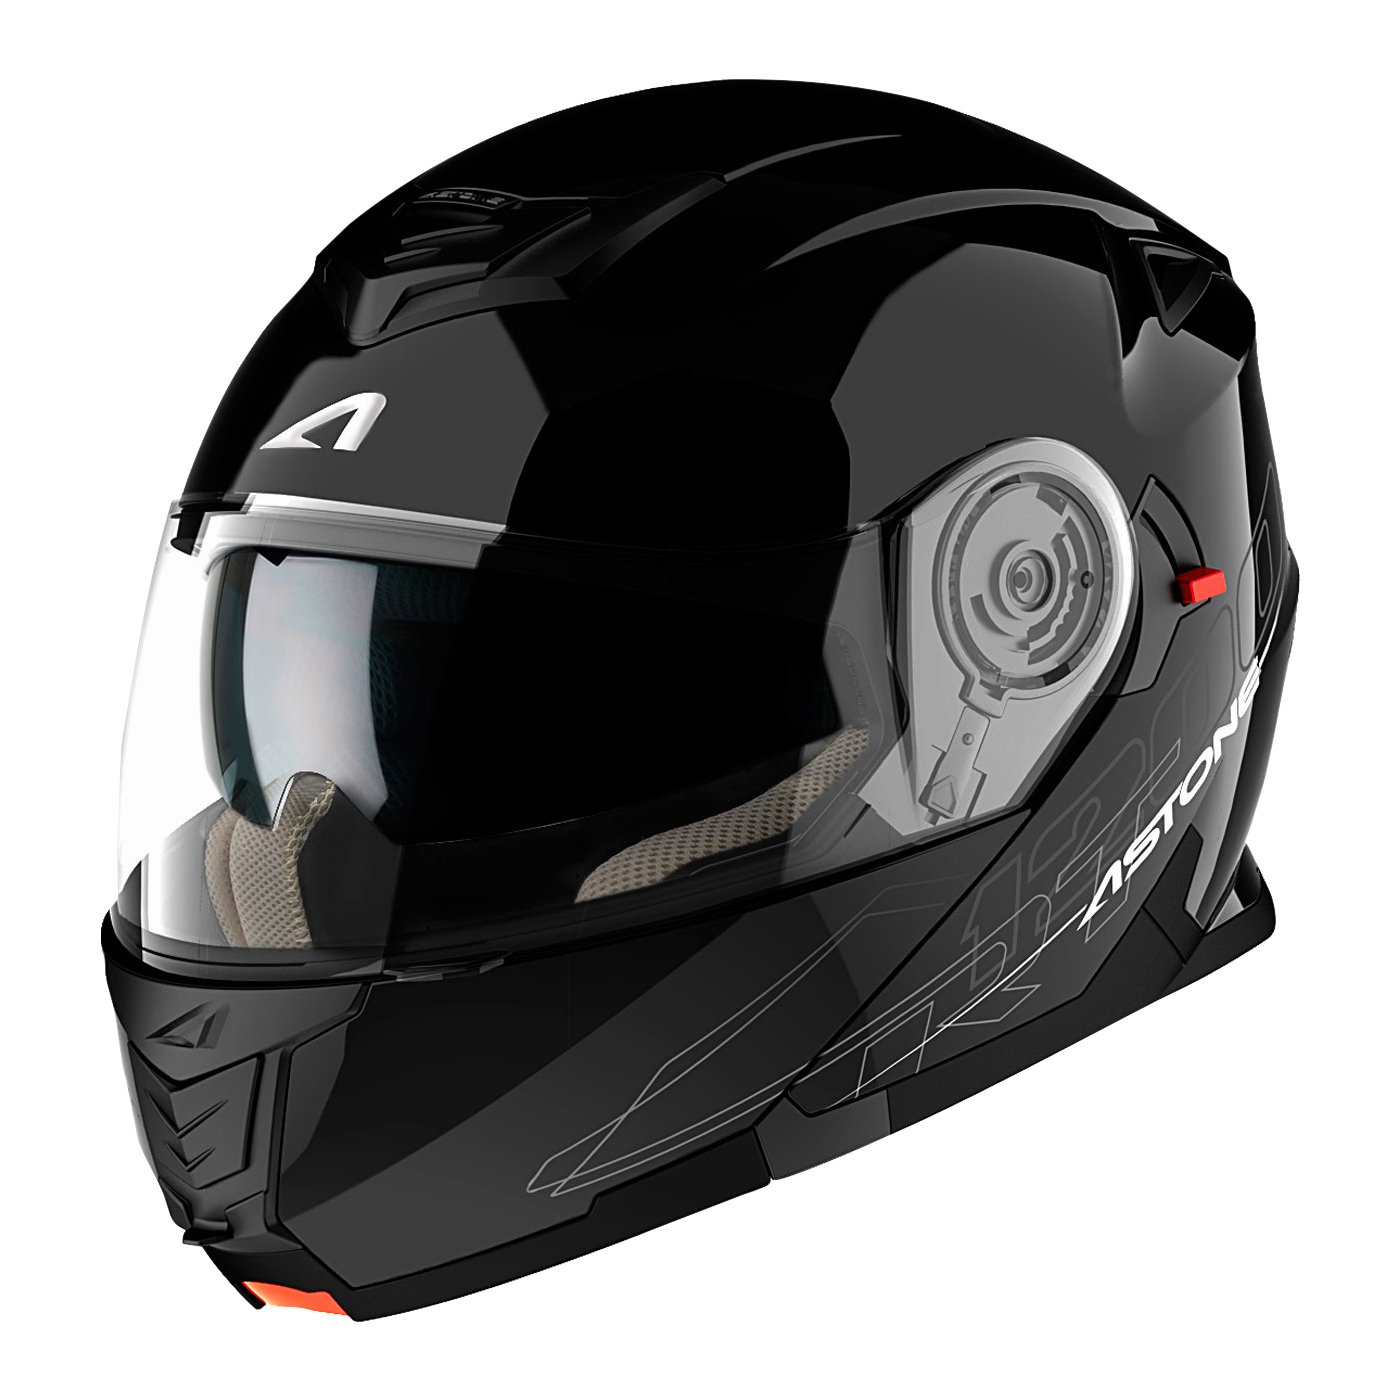 Astone Helmets, Casco, color Negro Brillante, talla M product image